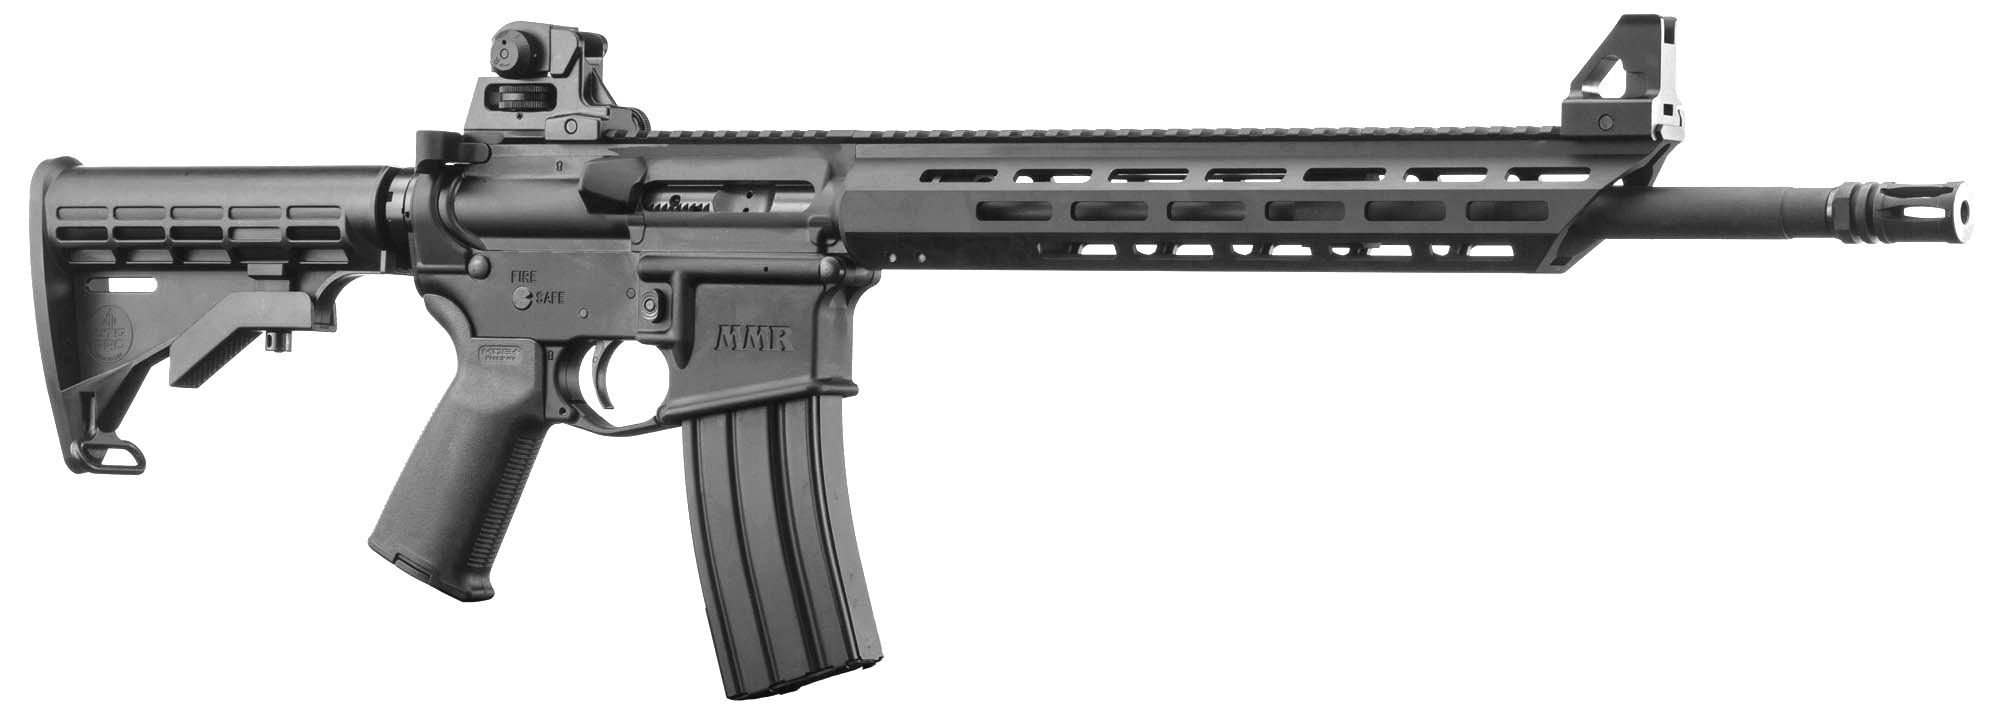 MOSSBERG MMR Tactical M4 calibre 223R